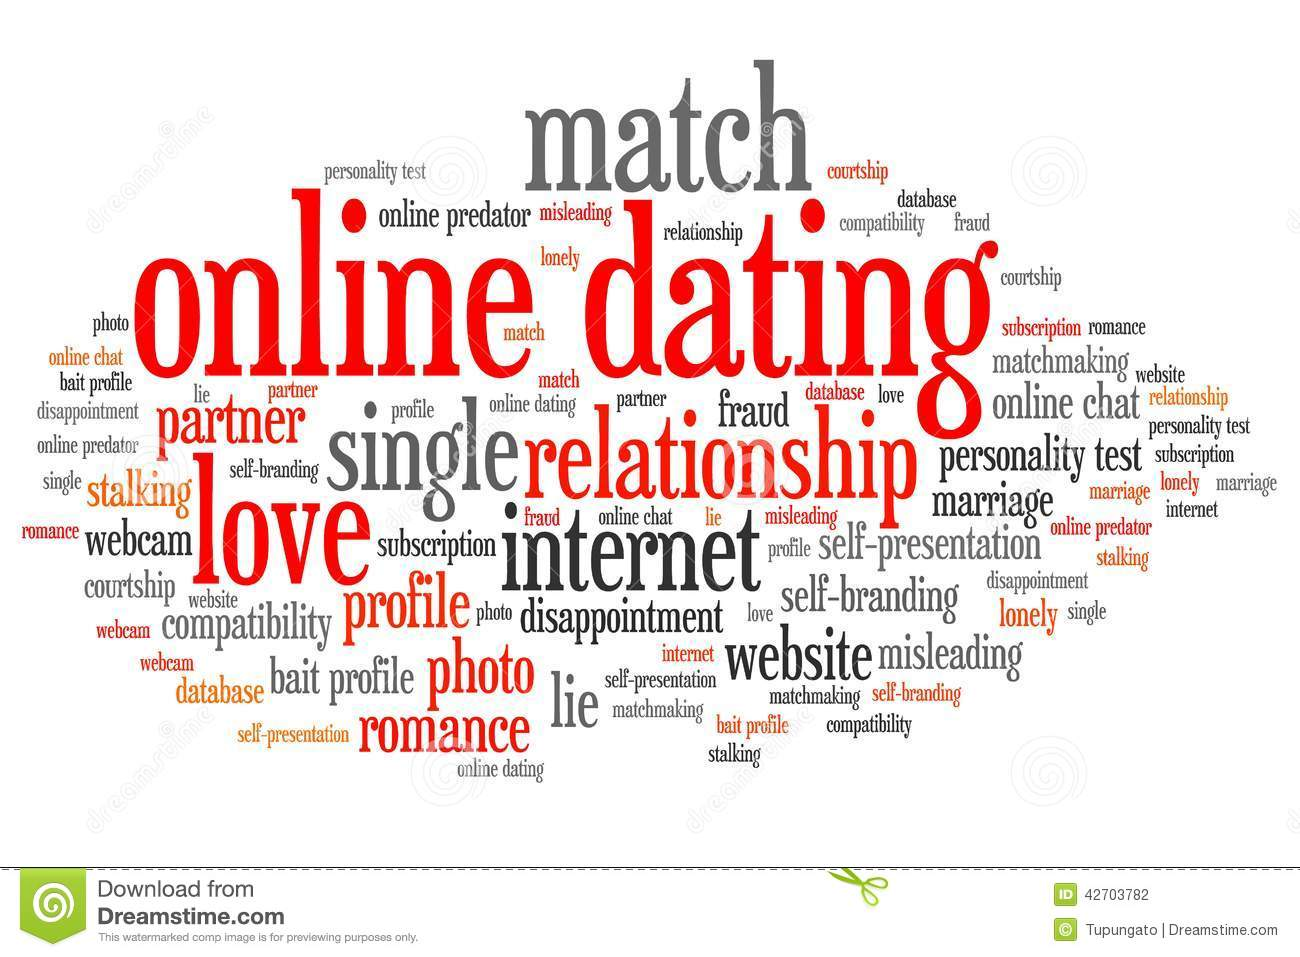 rogerson online hookup & dating Hookup id/meetup id/ or dating id is an online identification system required by almost all online dating sites nowadays to ensure the safety of their members.